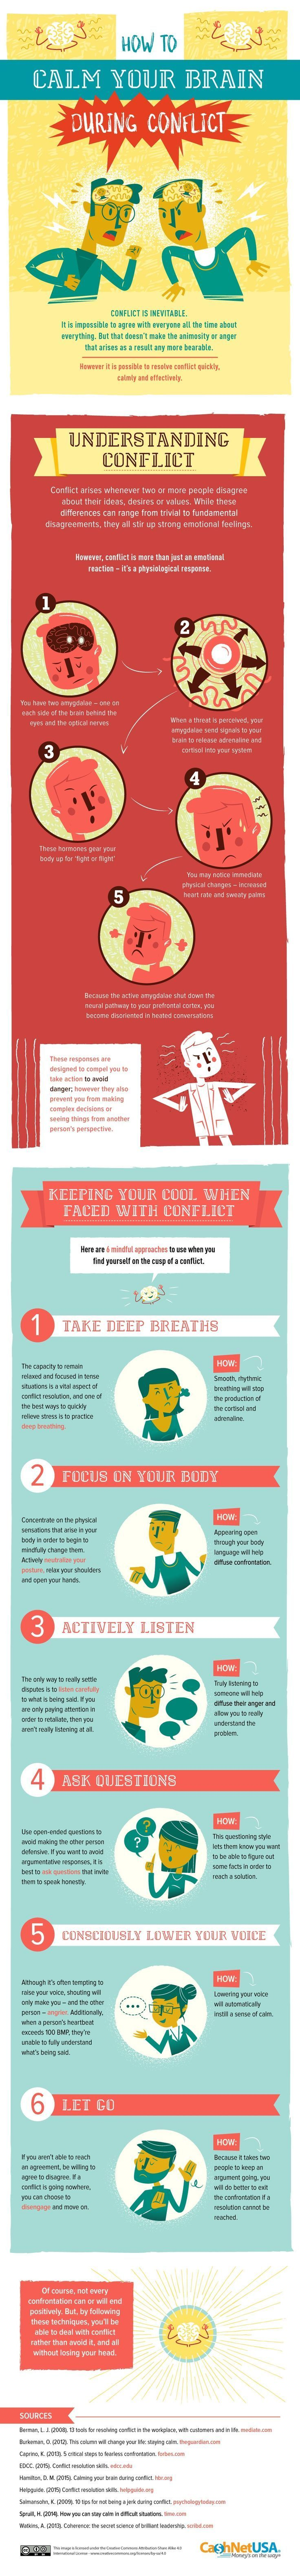 How to keep calm during conflict